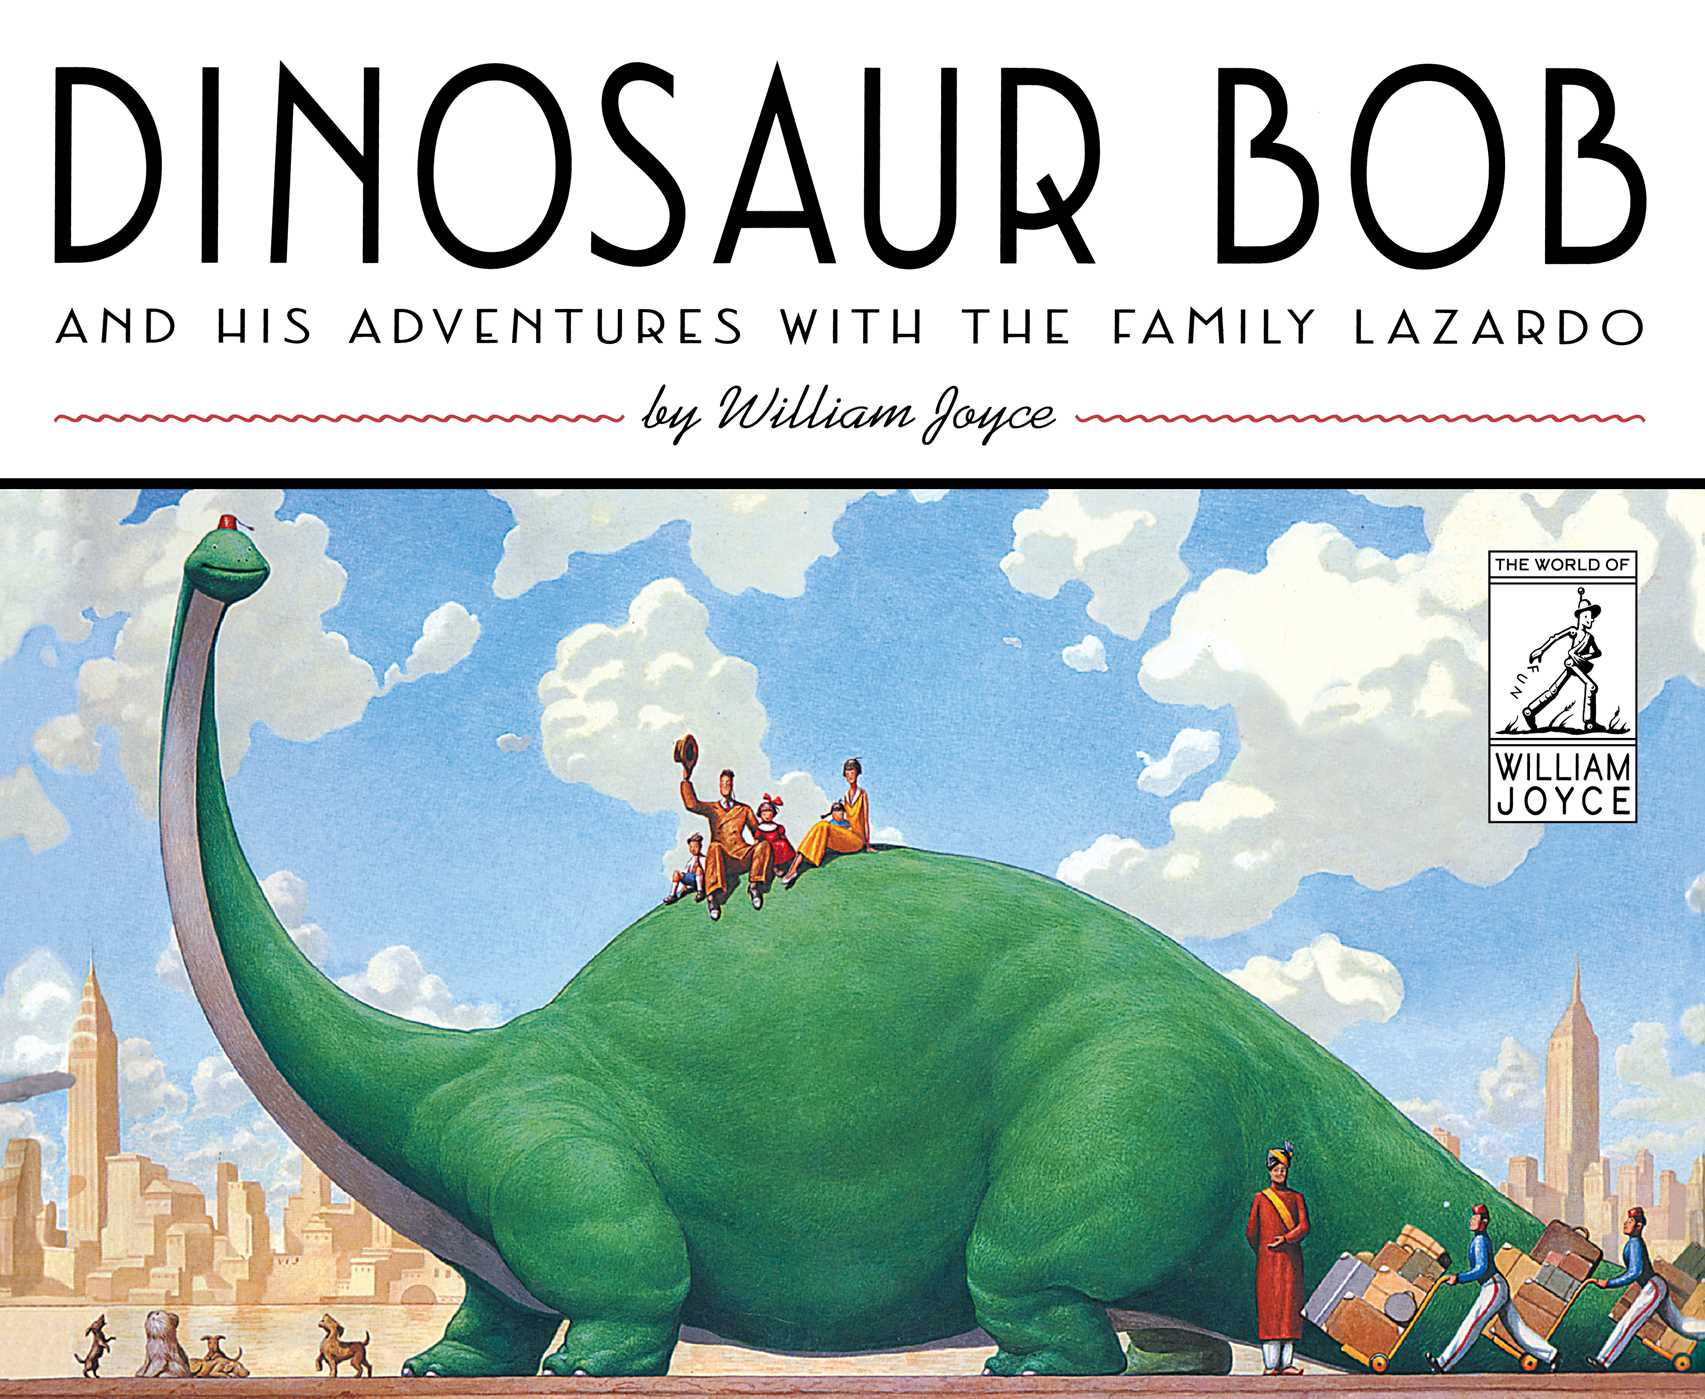 Dinosaur bob and his adventures with the family lazardo 9781481489485 hr